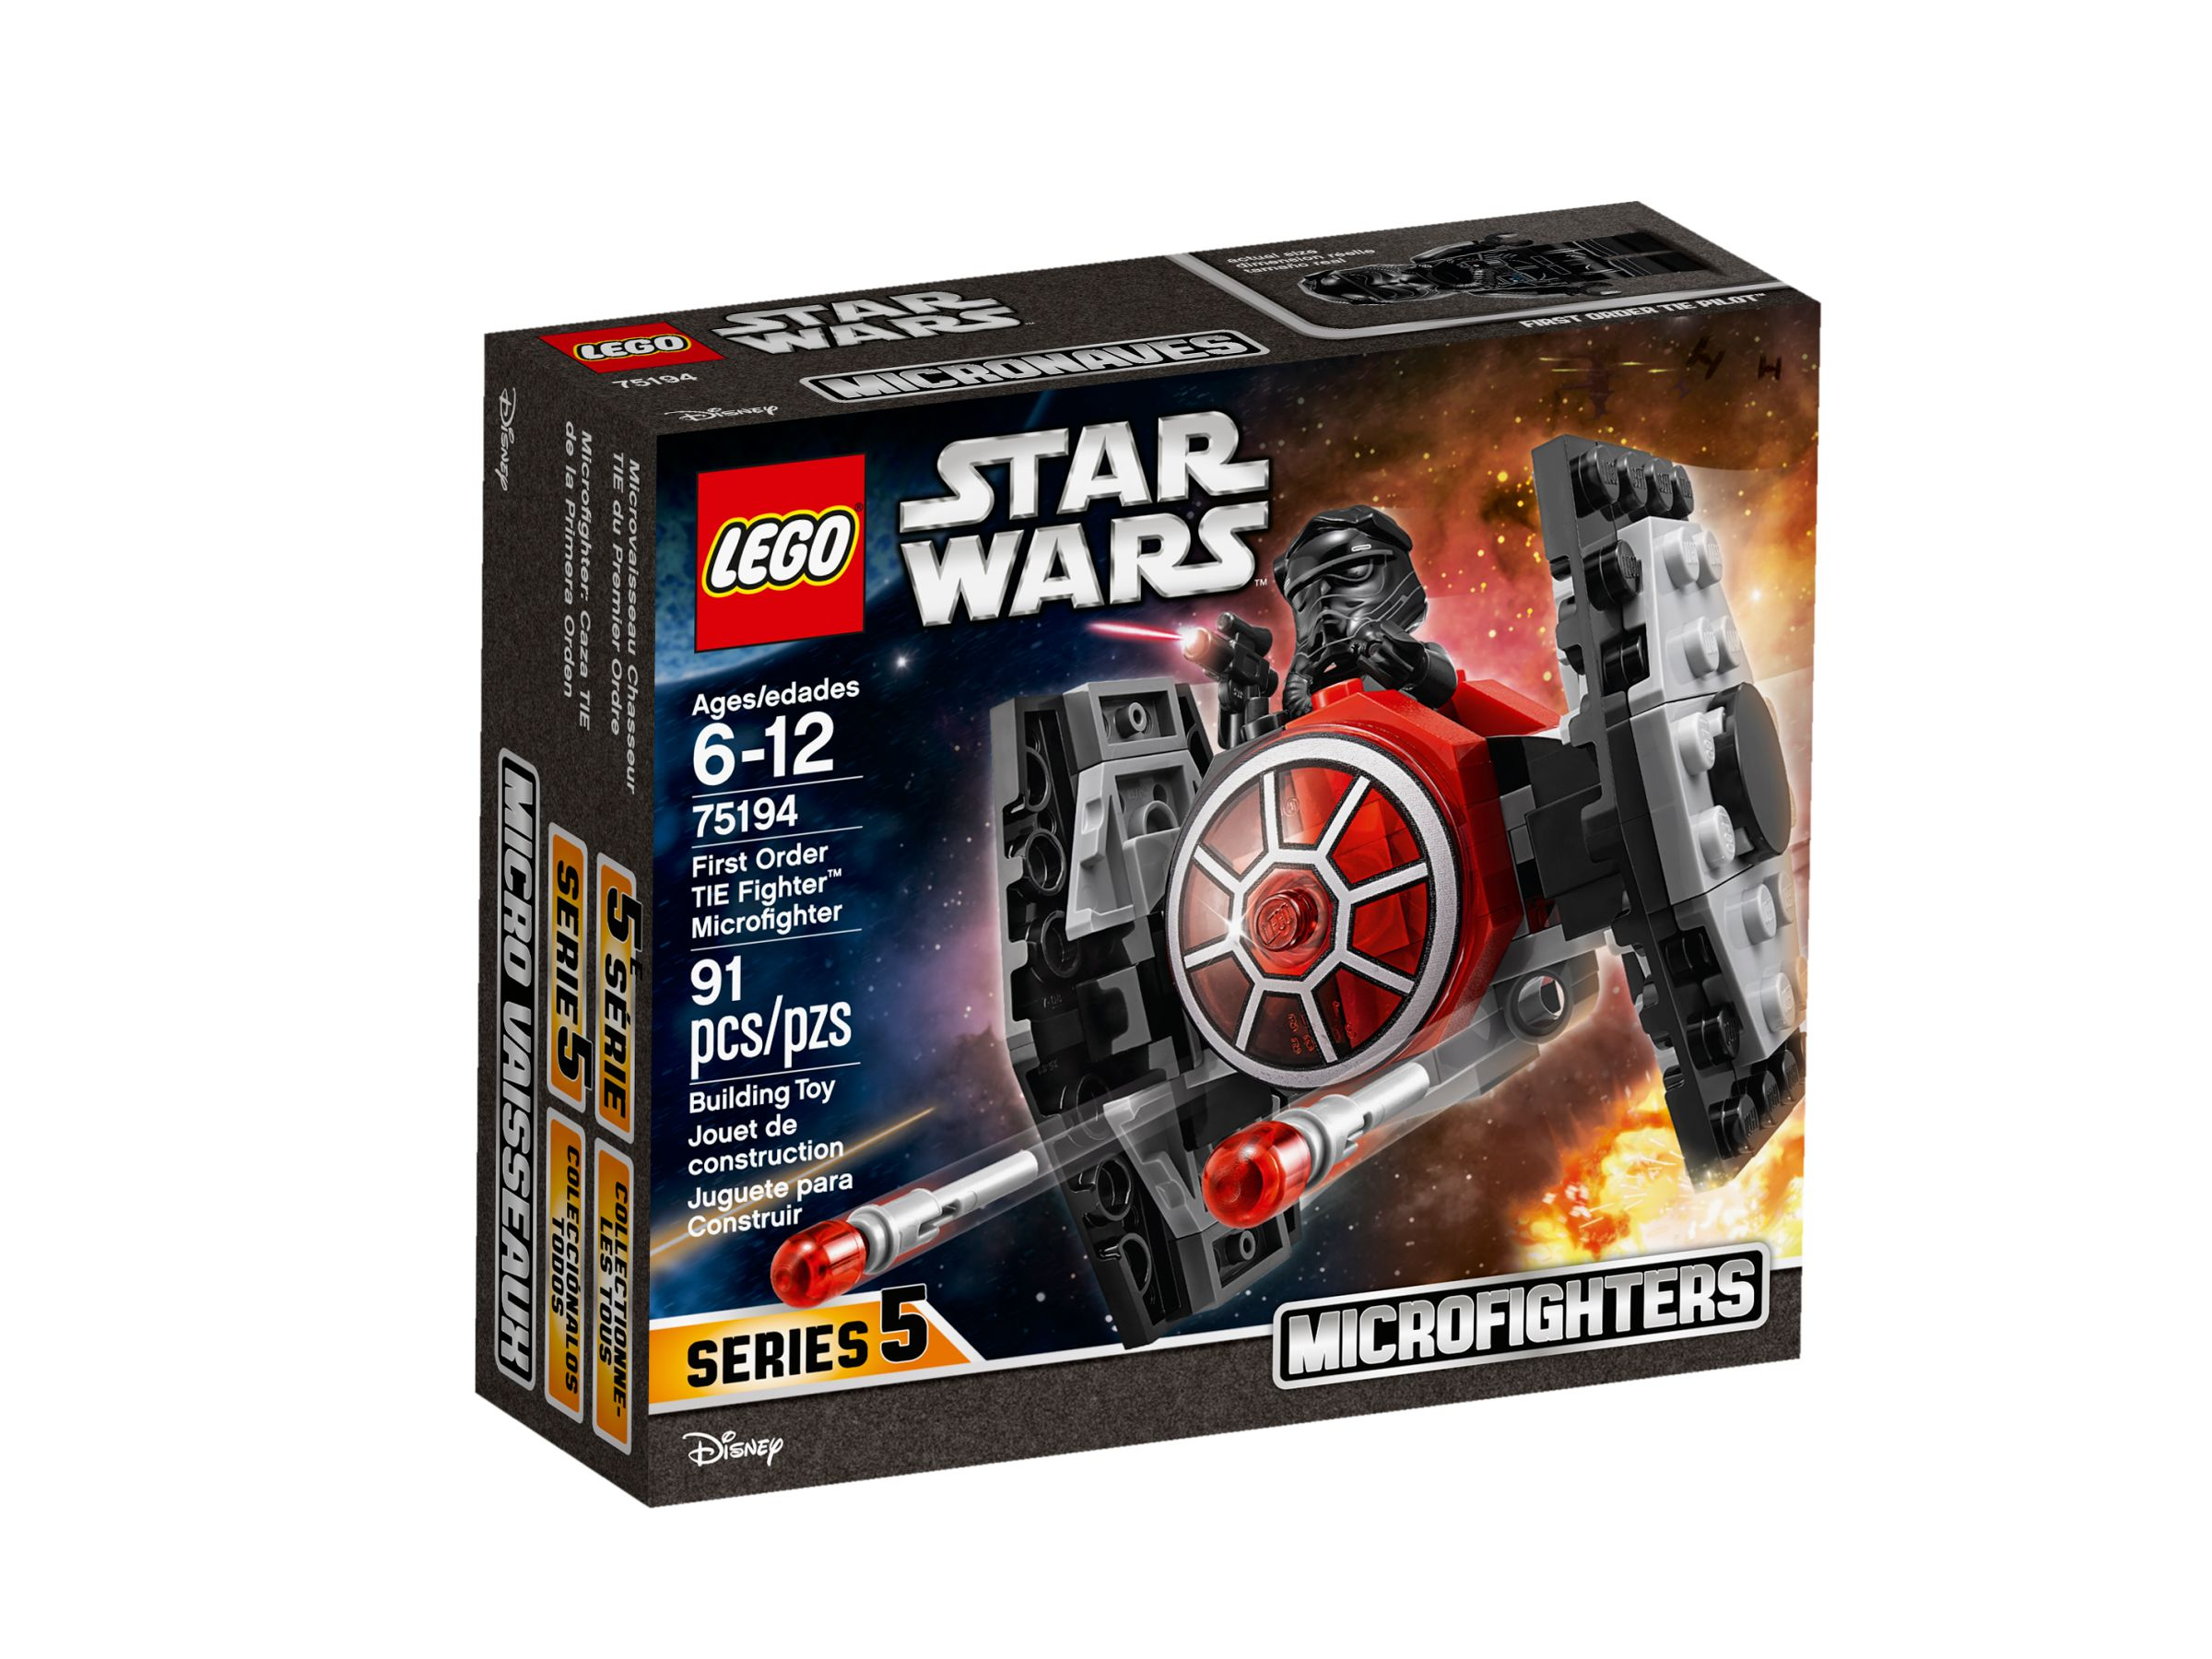 LEGO Star Wars 75194 First Order TIE Fighter Microfighter LEGO_75194_alt1.jpg